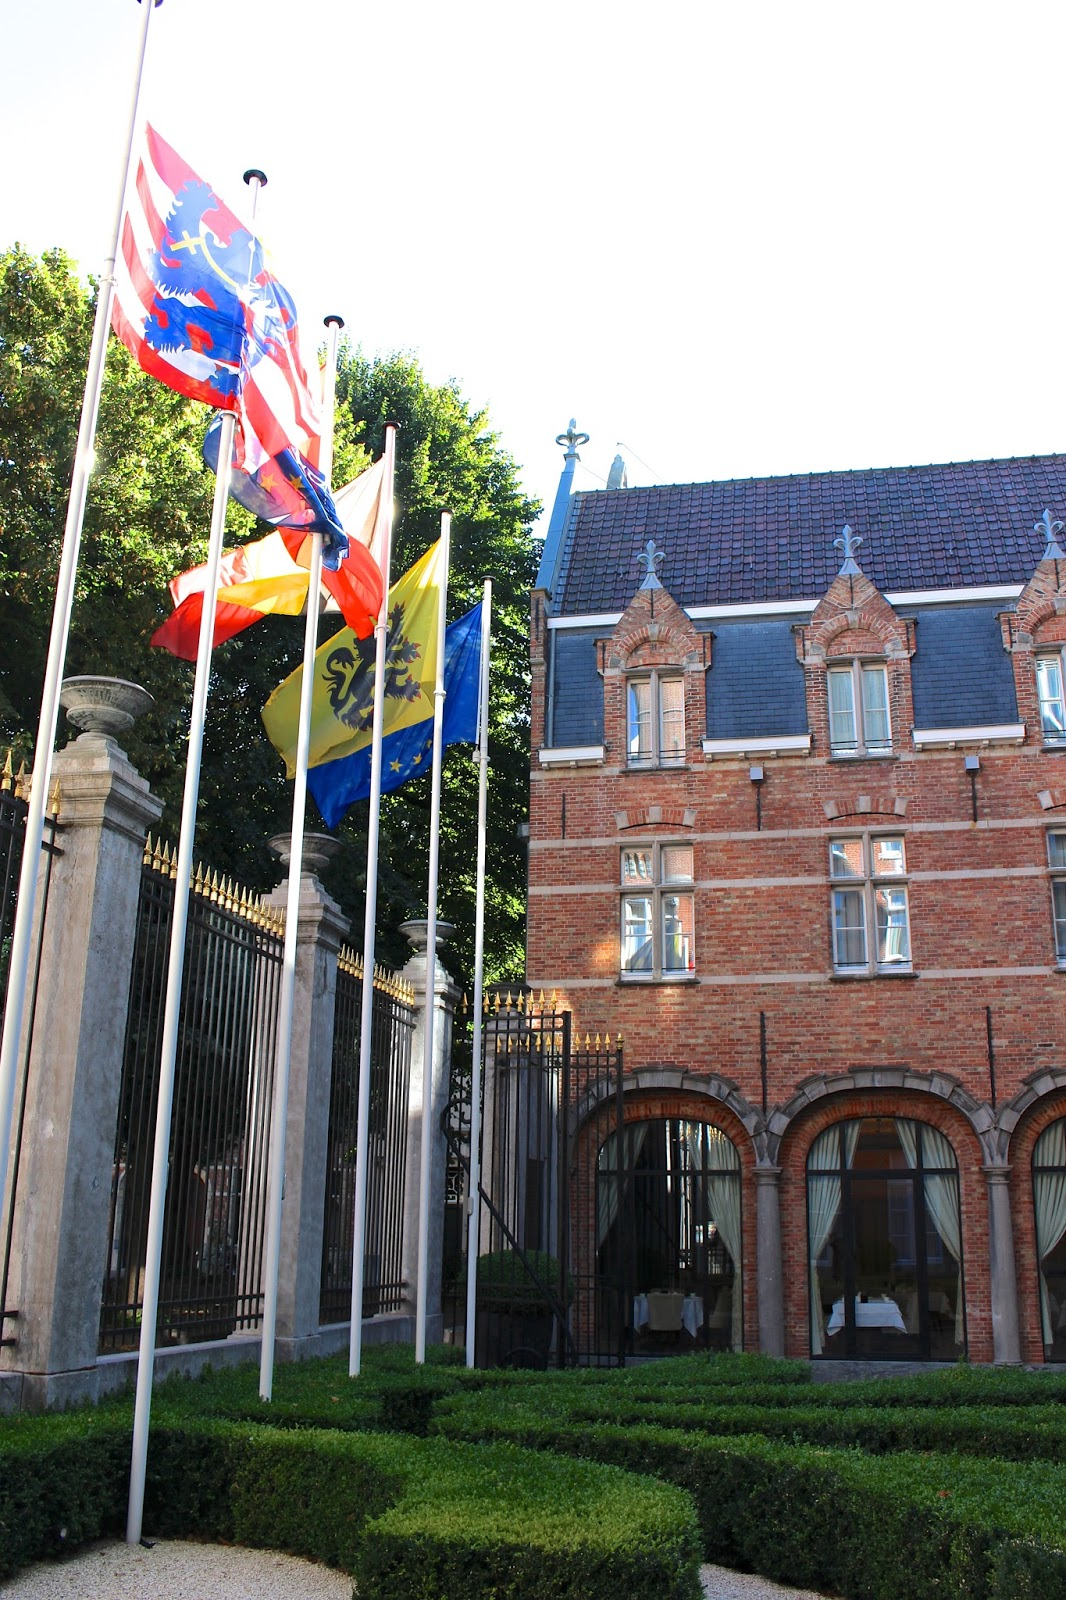 Exterior and flags of Hotel Dukes' Palace